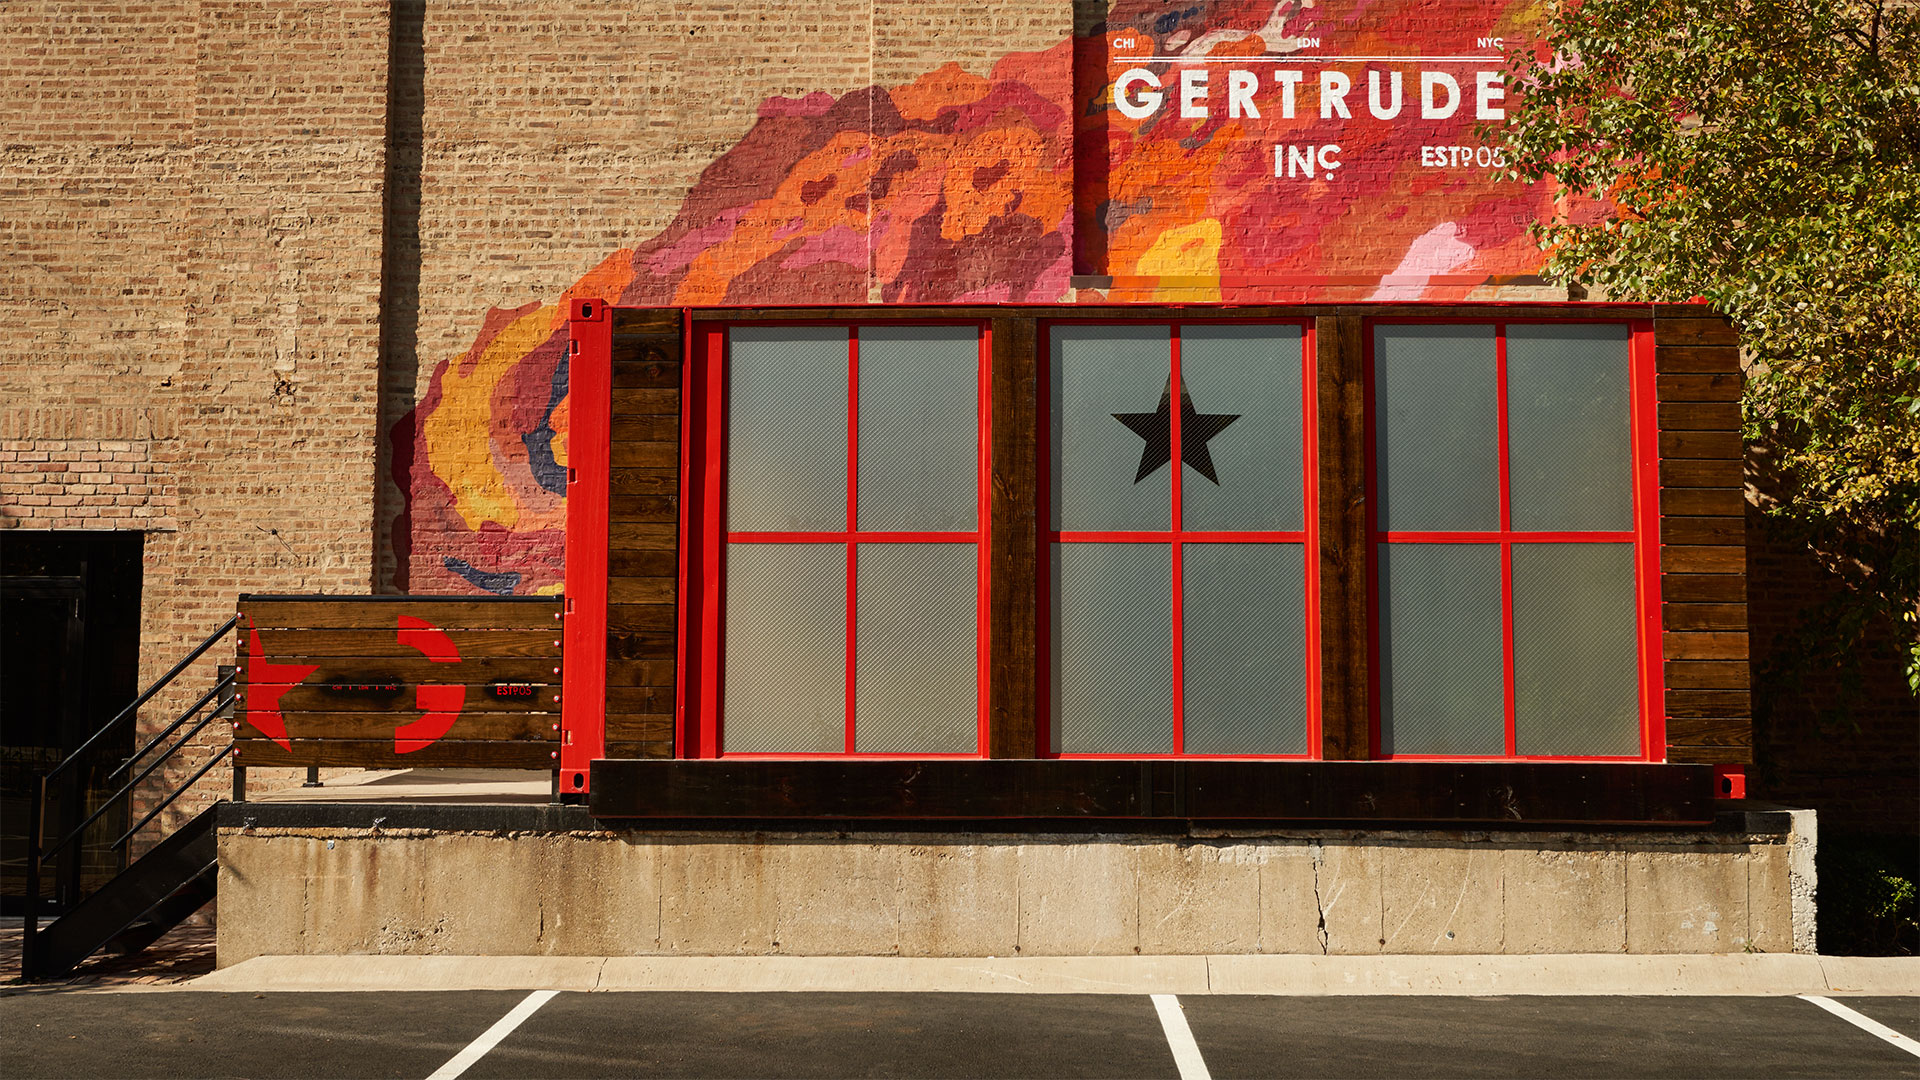 Gertrude, Inc. Agency Custom Designed Red Shipping Container Entrance and Branding